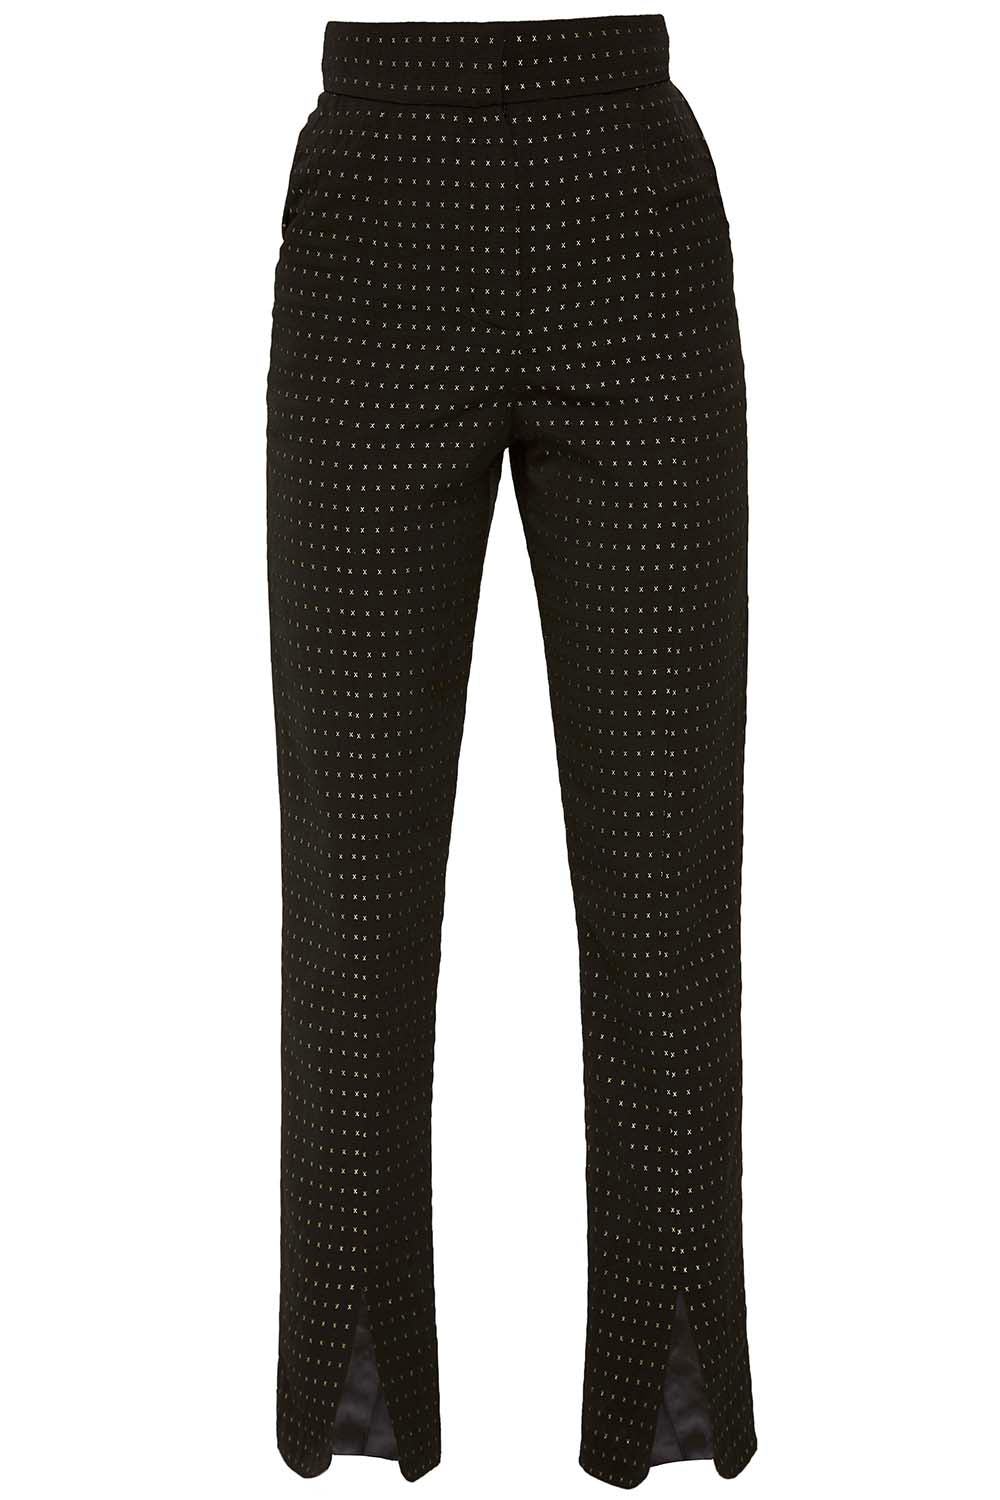 The Split Ends Trousers in Black & Gold